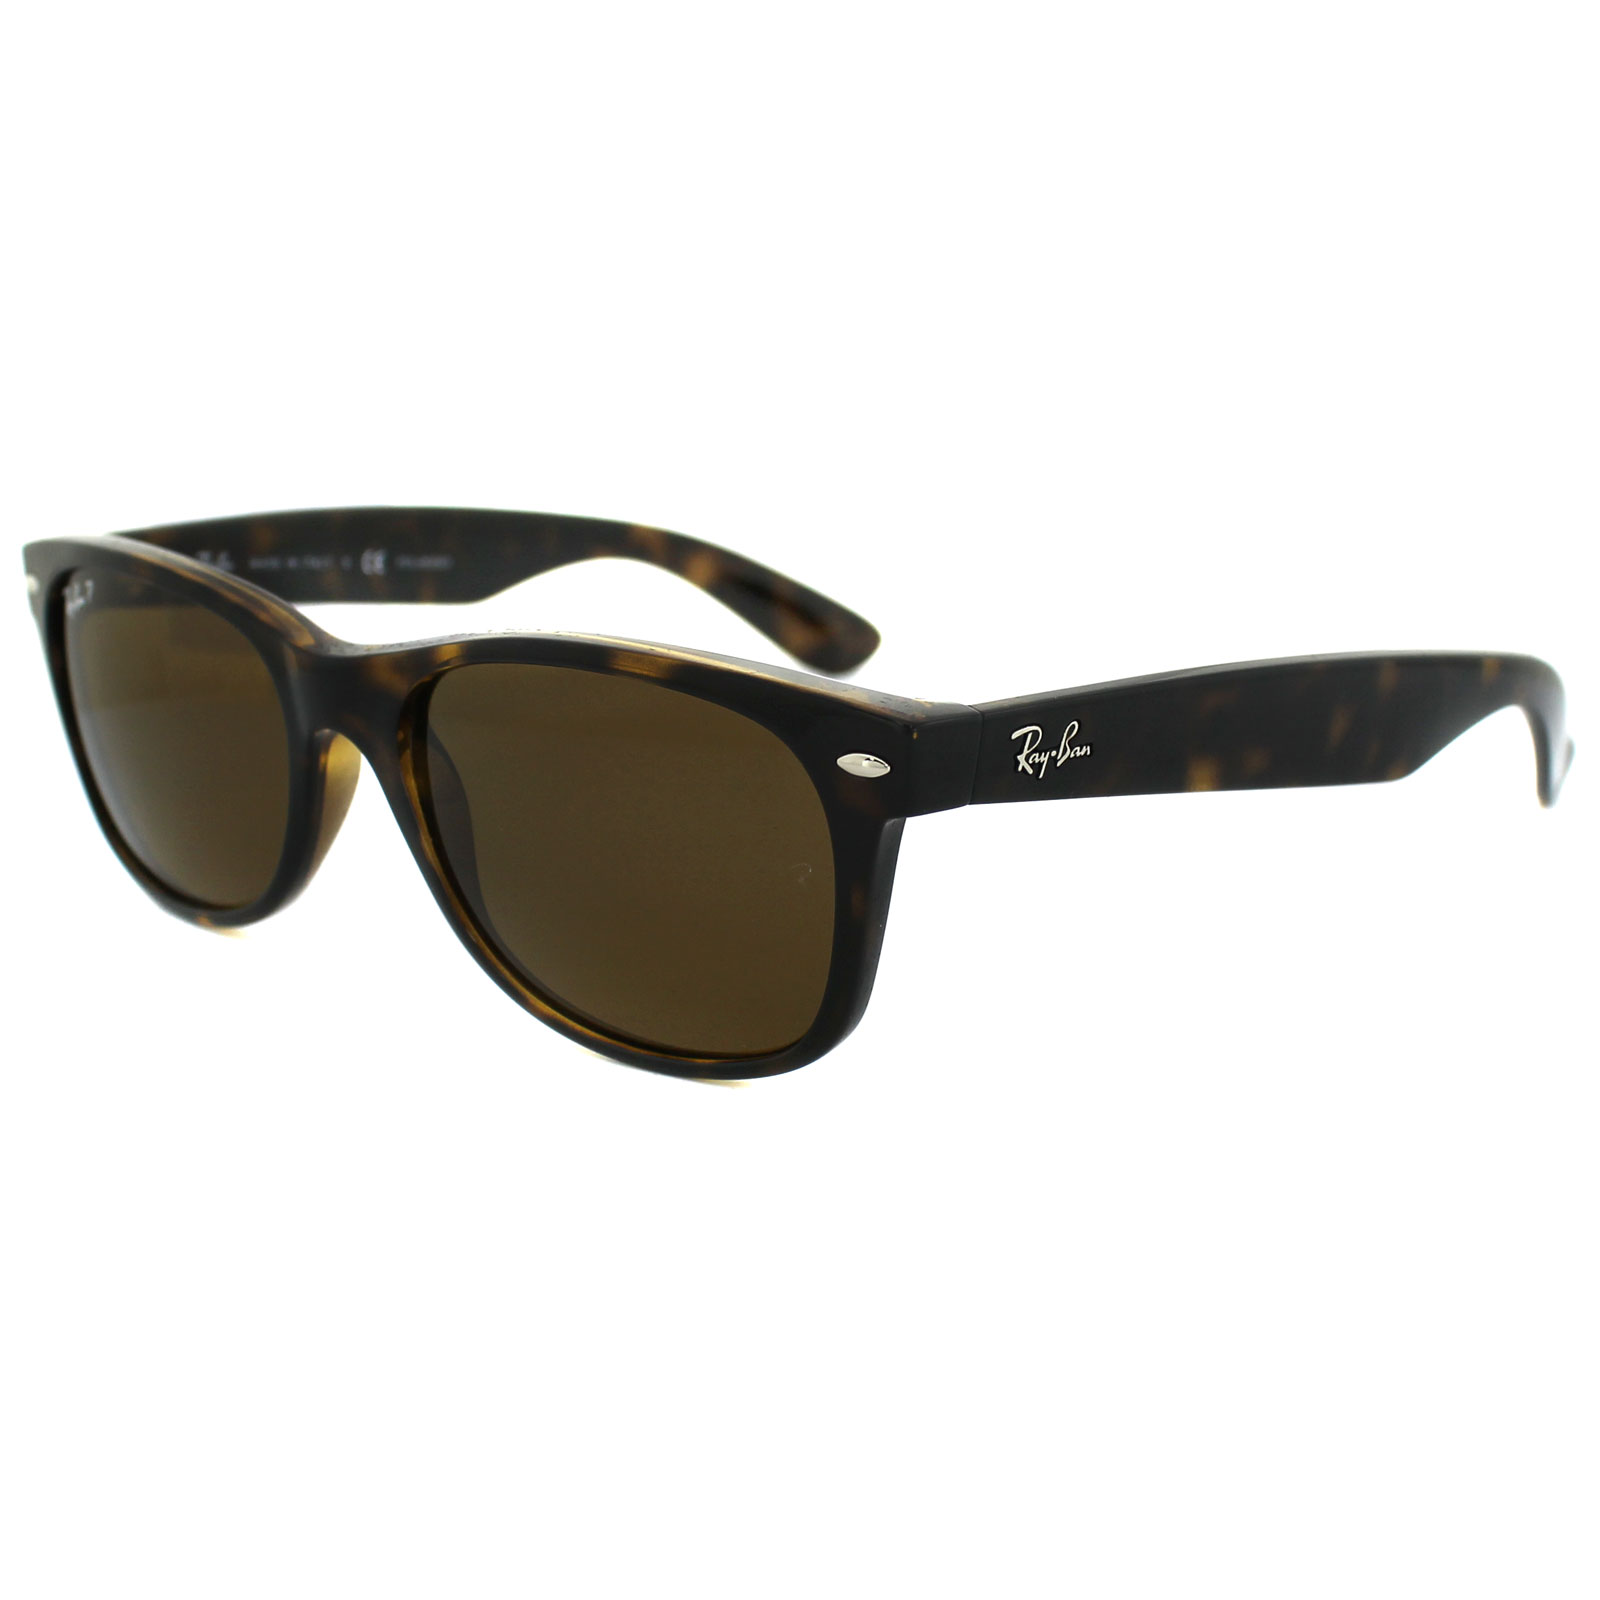 ray ban sunglasses new wayfarer 2132 902 57 tortoise brown polarized 55mm ebay. Black Bedroom Furniture Sets. Home Design Ideas